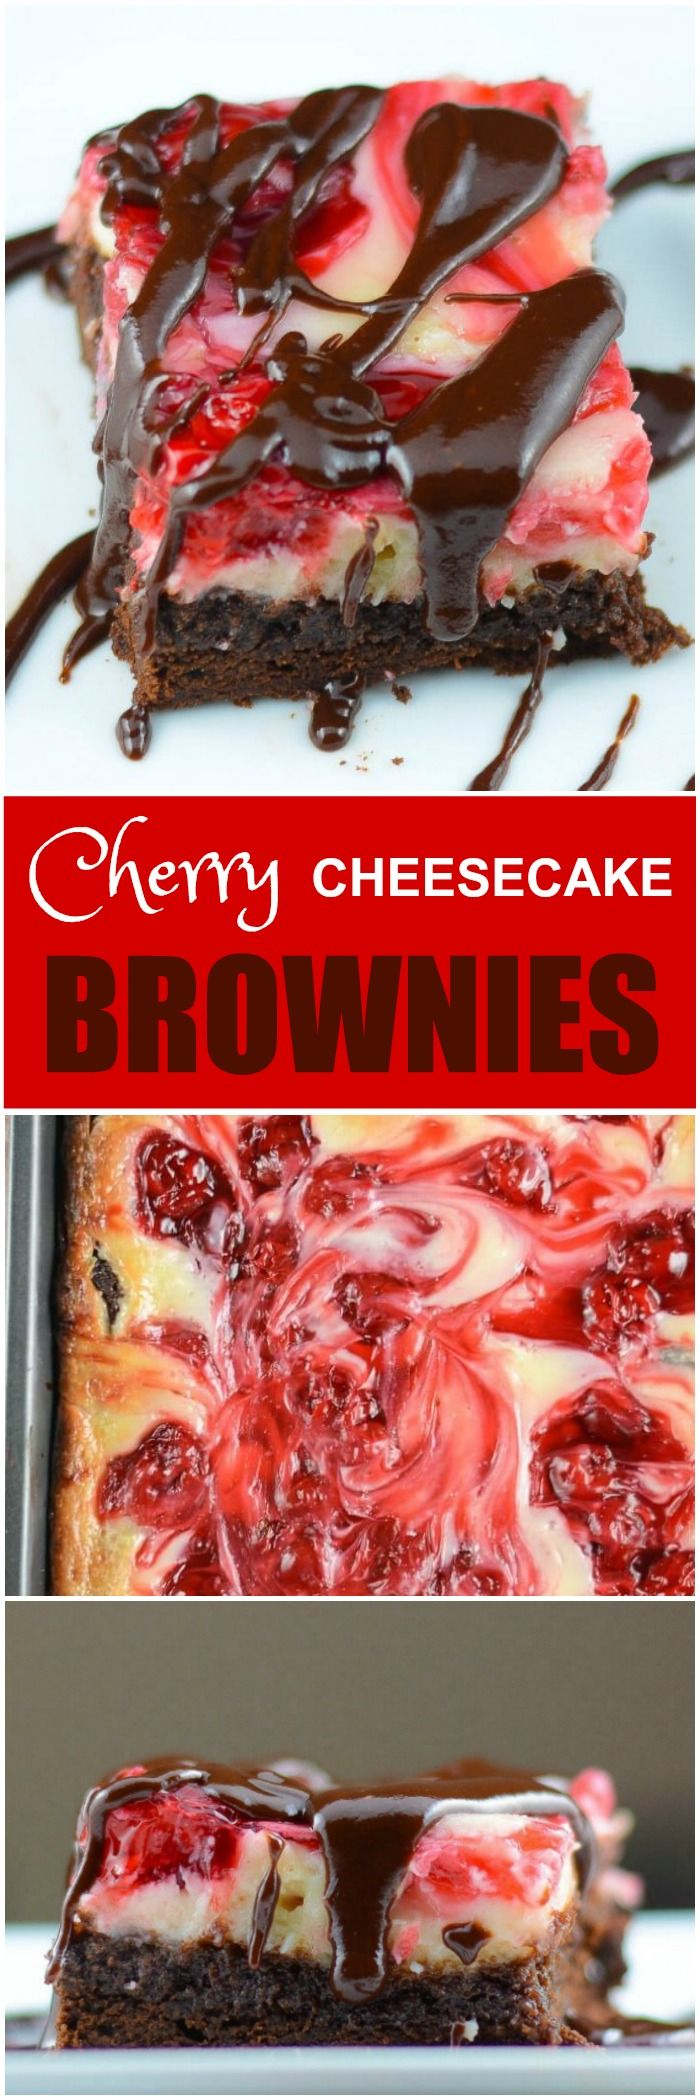 Rich, chocolatey brownies with a sweet creamy cheesecake swirled with cherries for Cherry Cheesecake Brownies, which are 3 desserts in one.